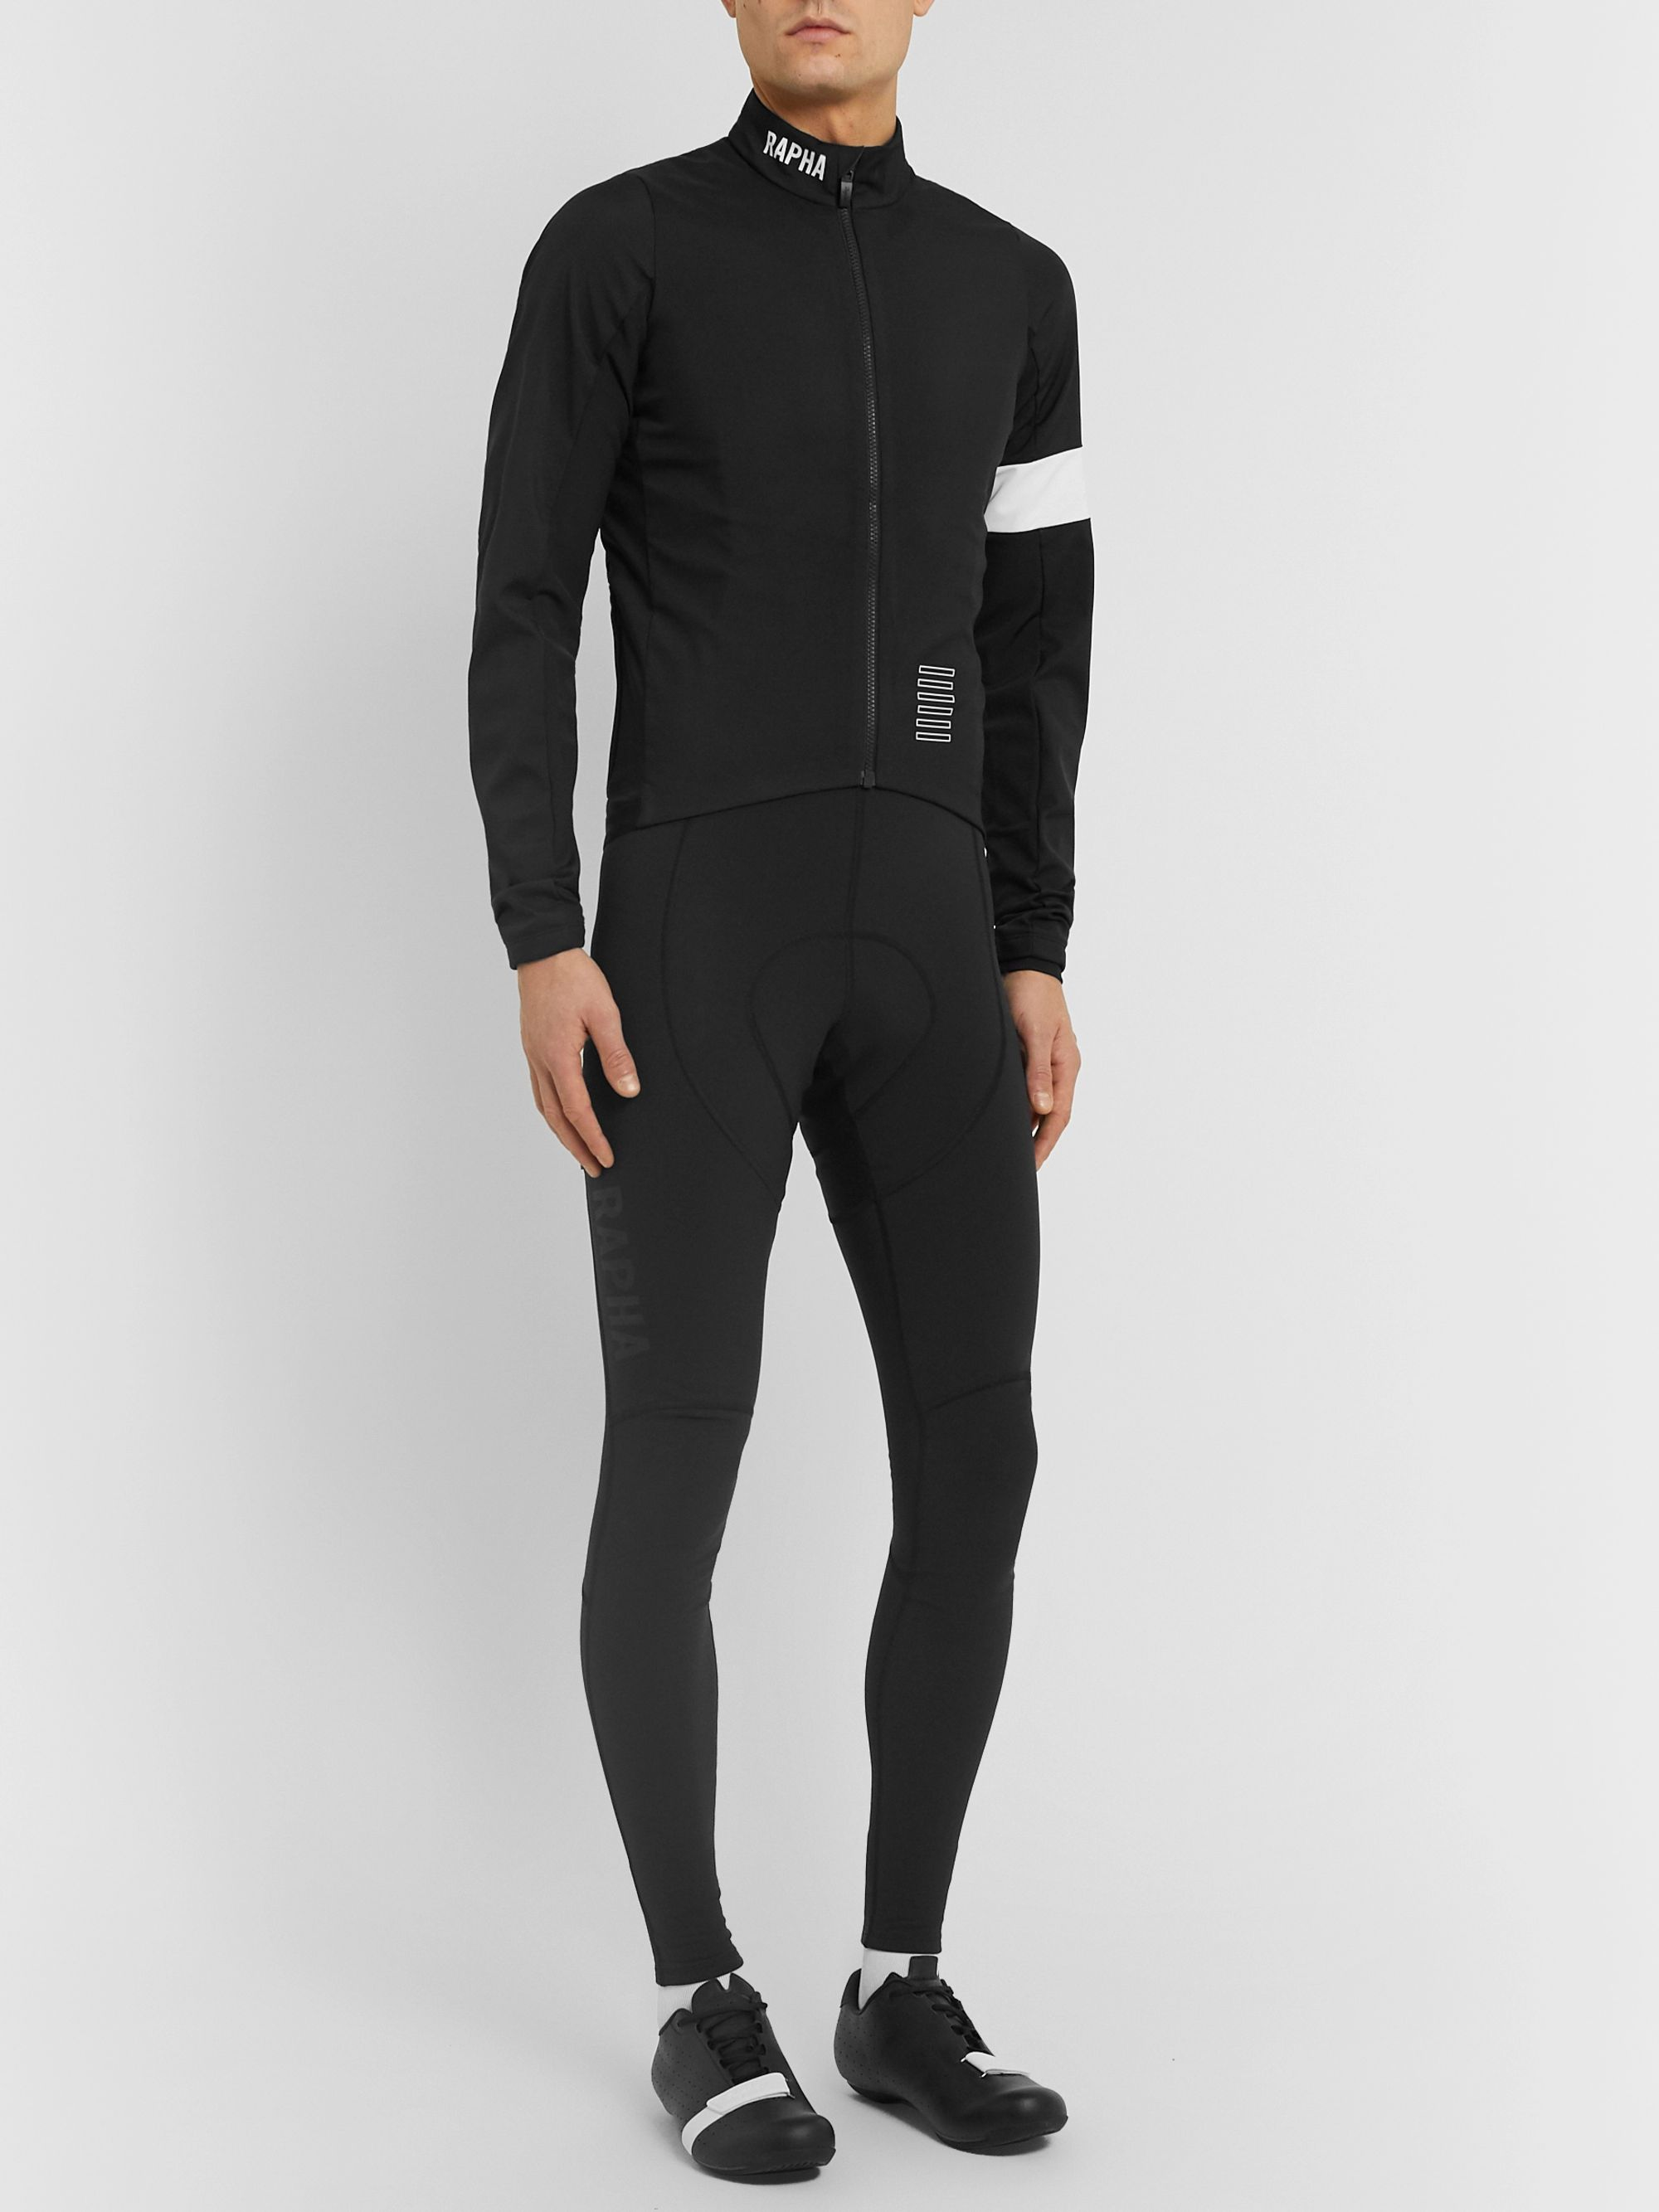 Rapha Pro Team Winter Cycling Bib Tights